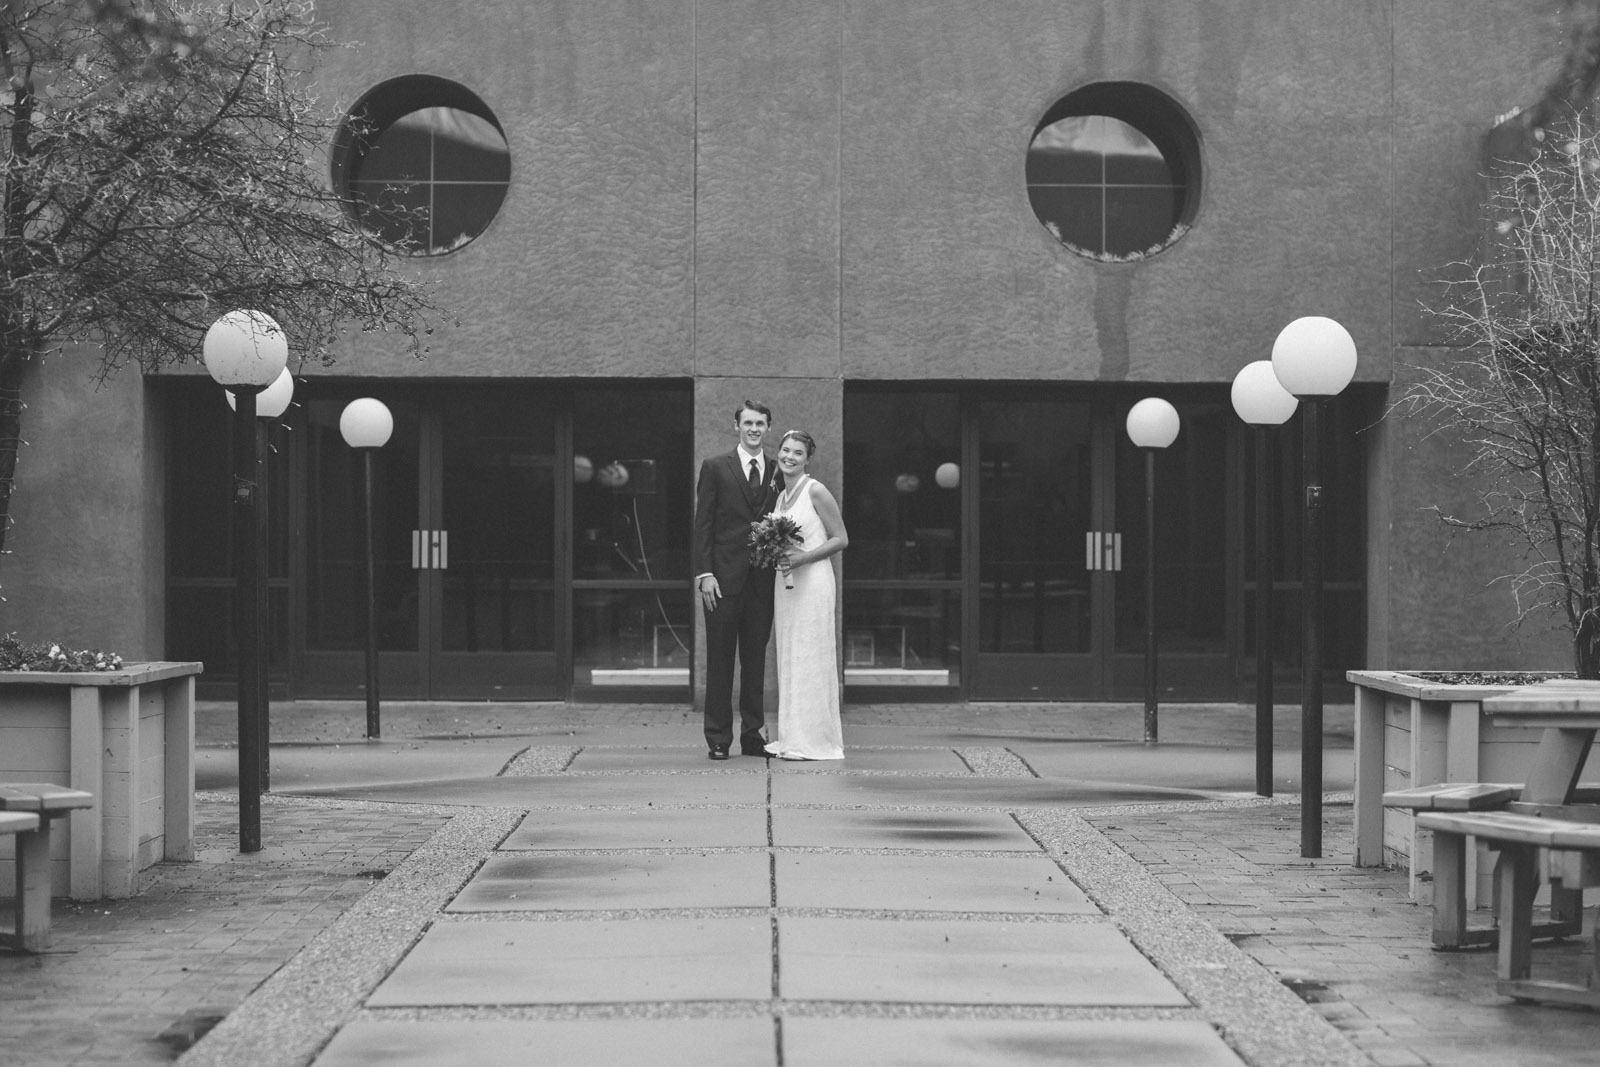 066-bride-and-groom-see-eachother-in-first-look-in-courtyard-before-the-ceremony-in-albuquerque-nm